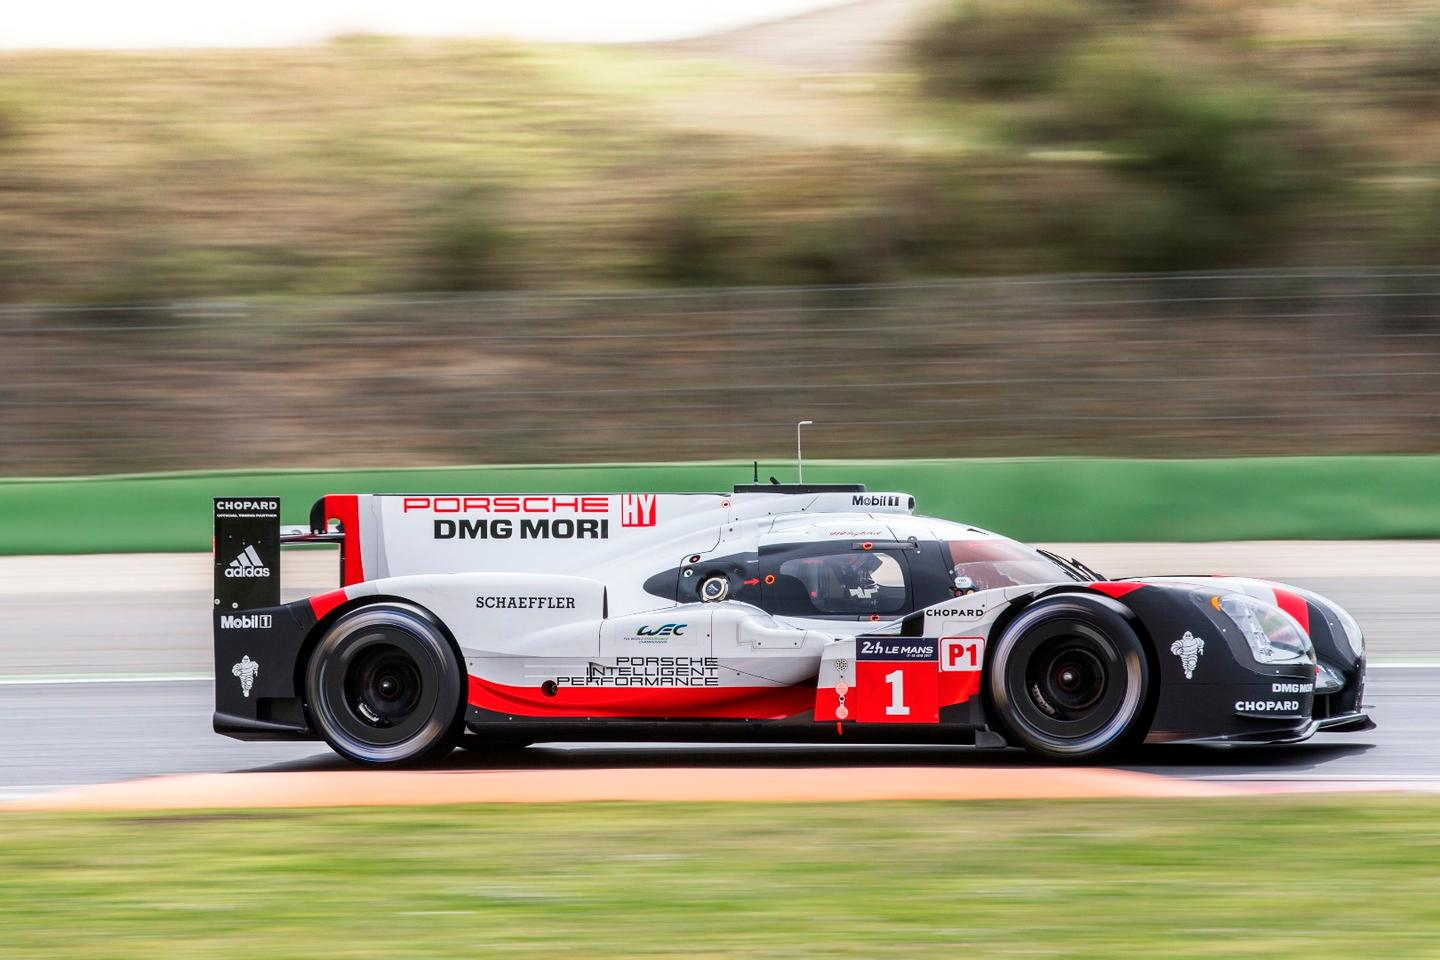 The 919 Hybrid is targeted directly at Le Mans glory